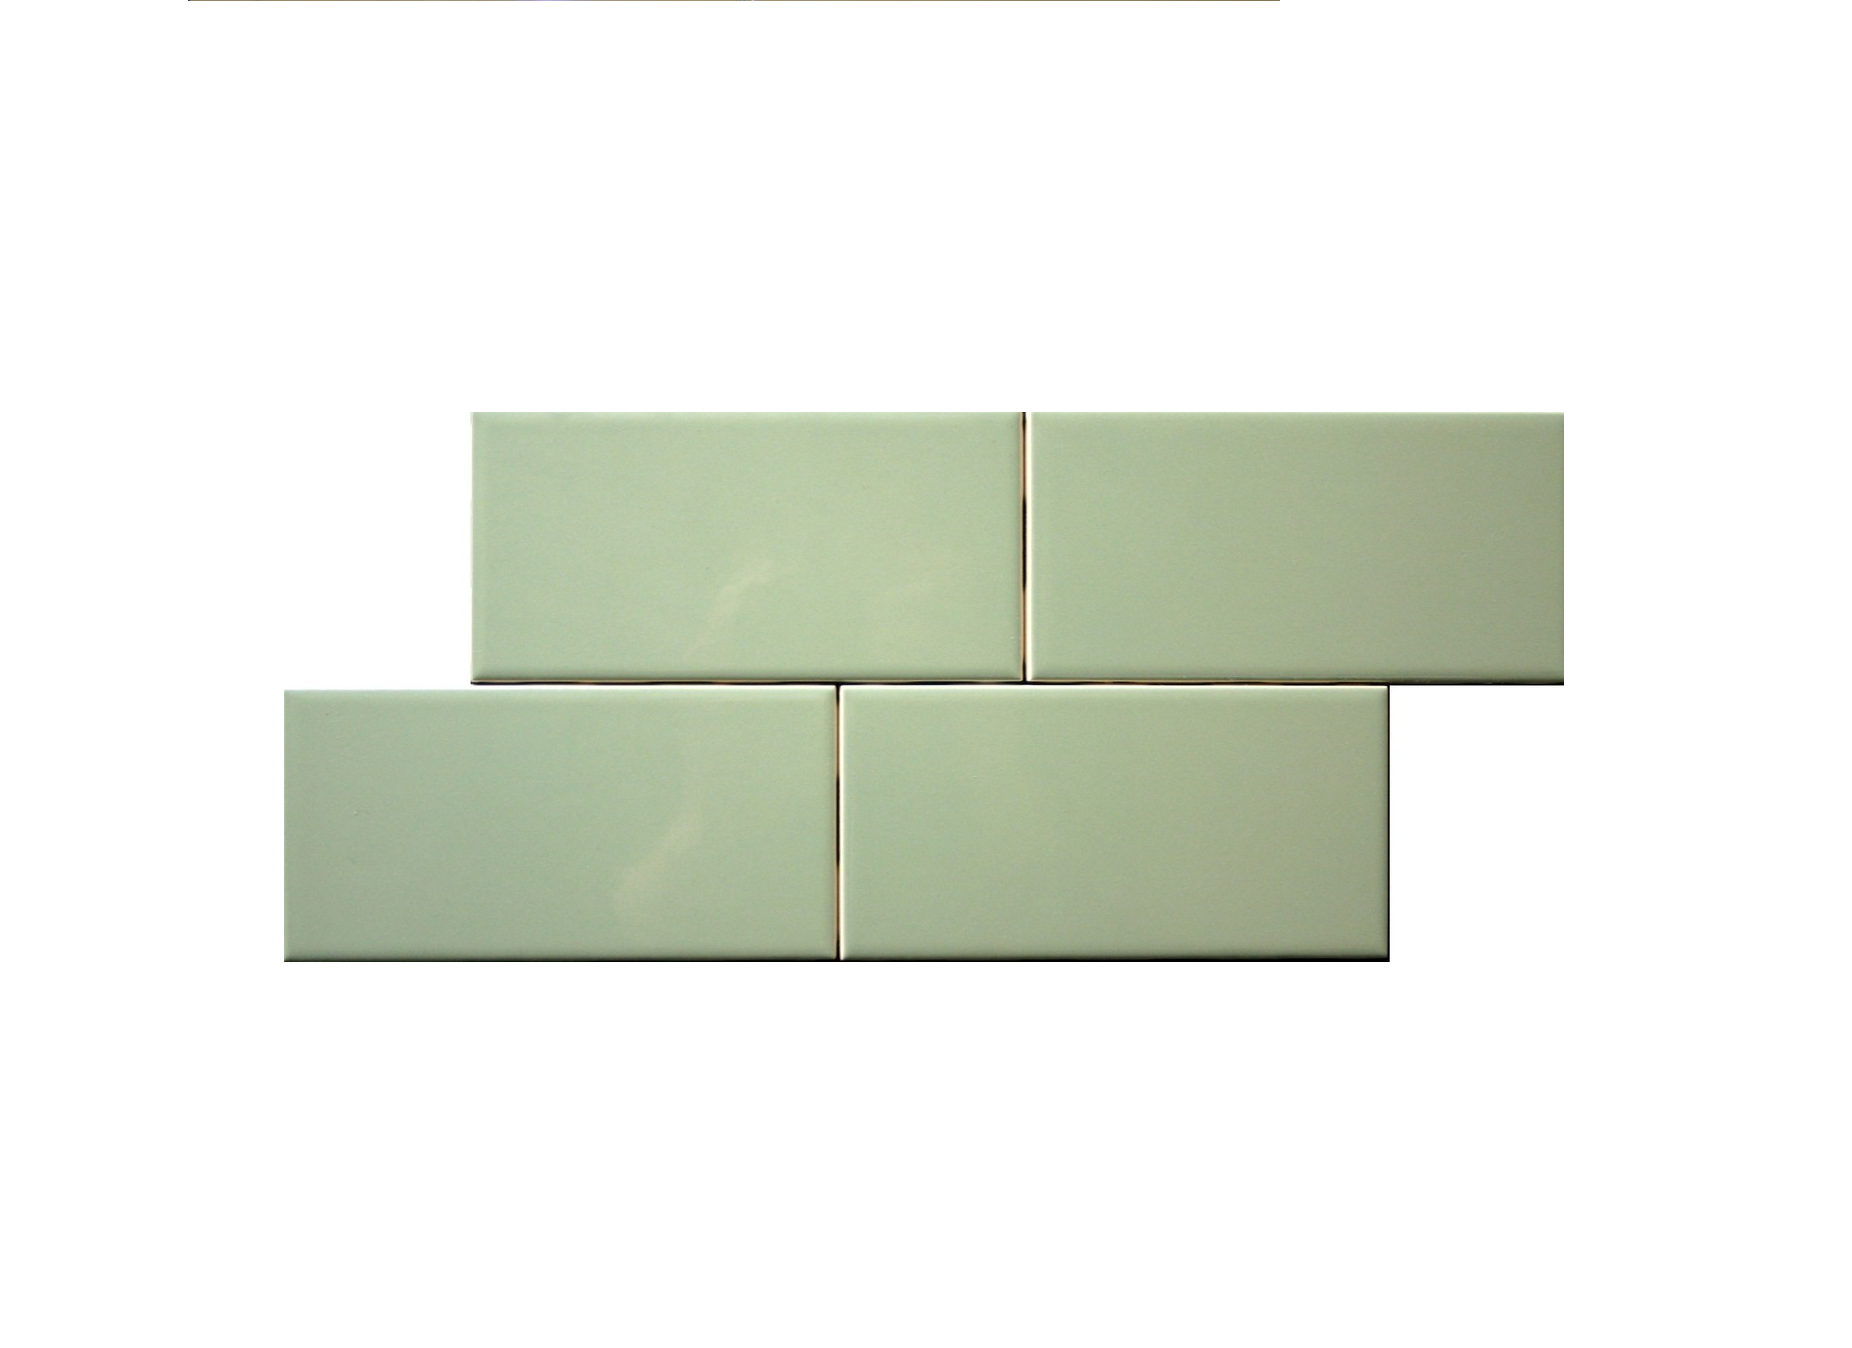 Cc spring green gloss 3x6 subway tile tigard carpet amp tigard ceramic subway tile 3x6 dailygadgetfo Images